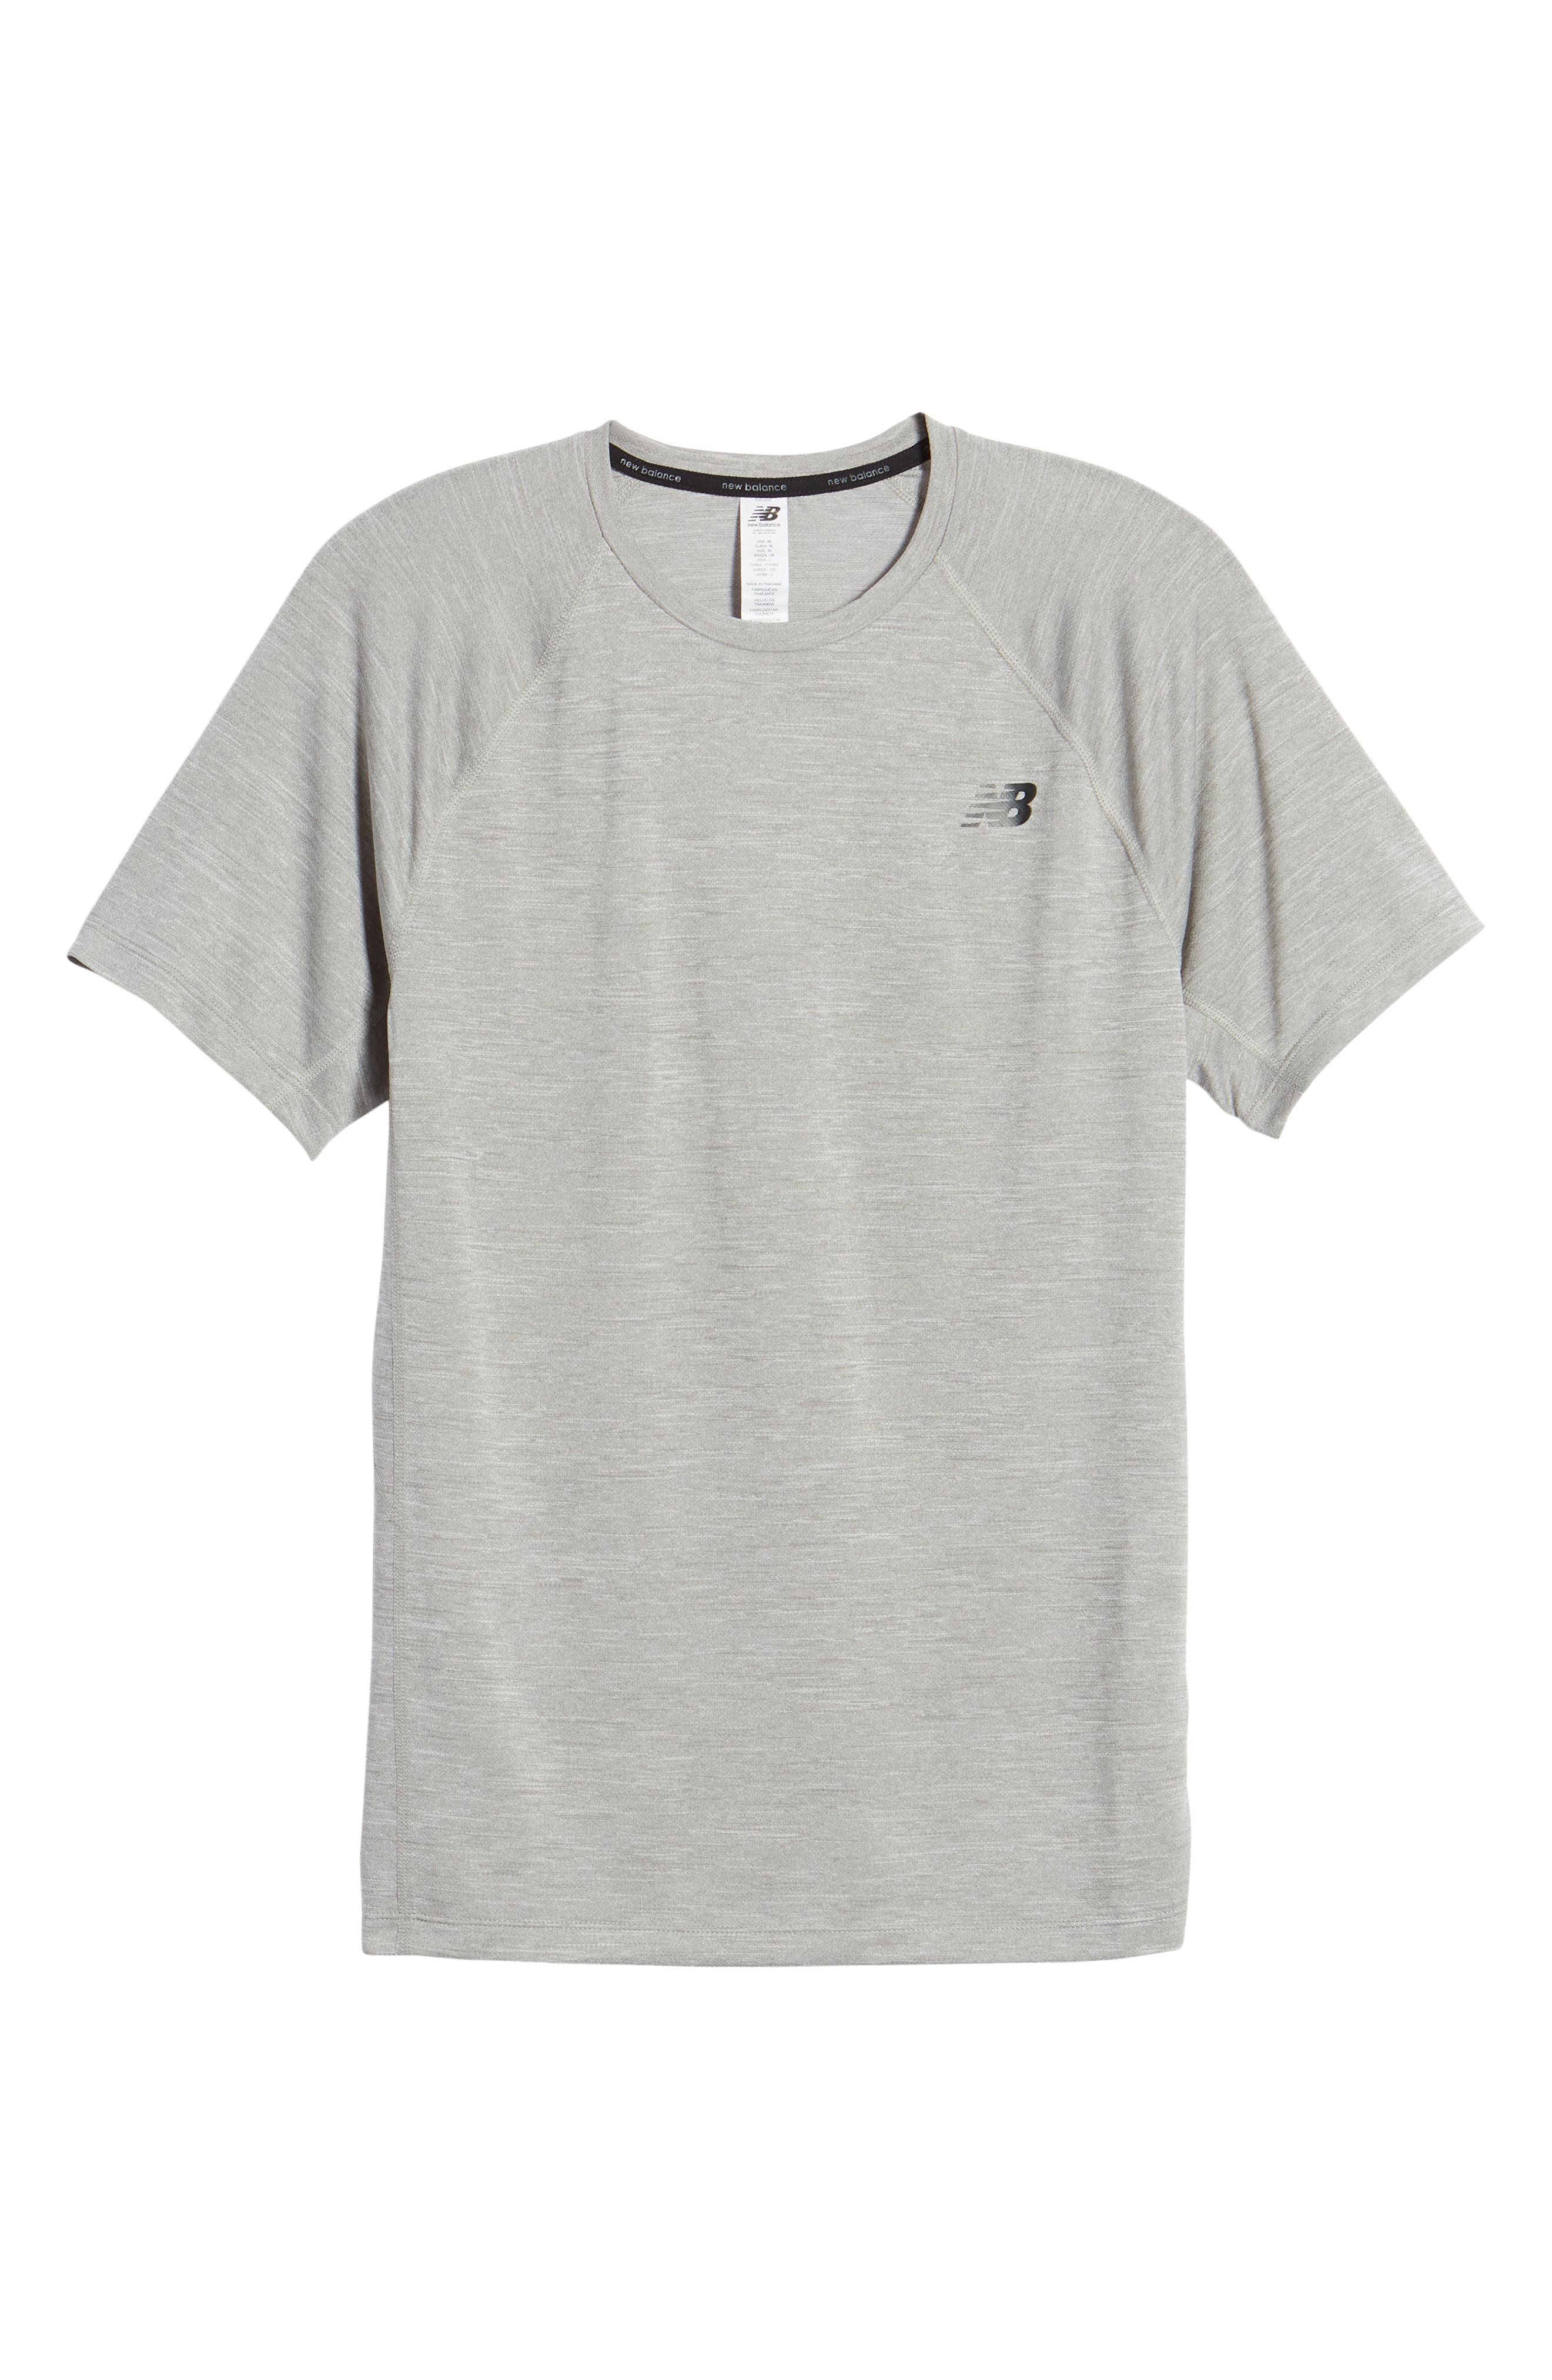 Tenacity Crewneck T-Shirt,                             Alternate thumbnail 6, color,                             ATHLETIC GREY